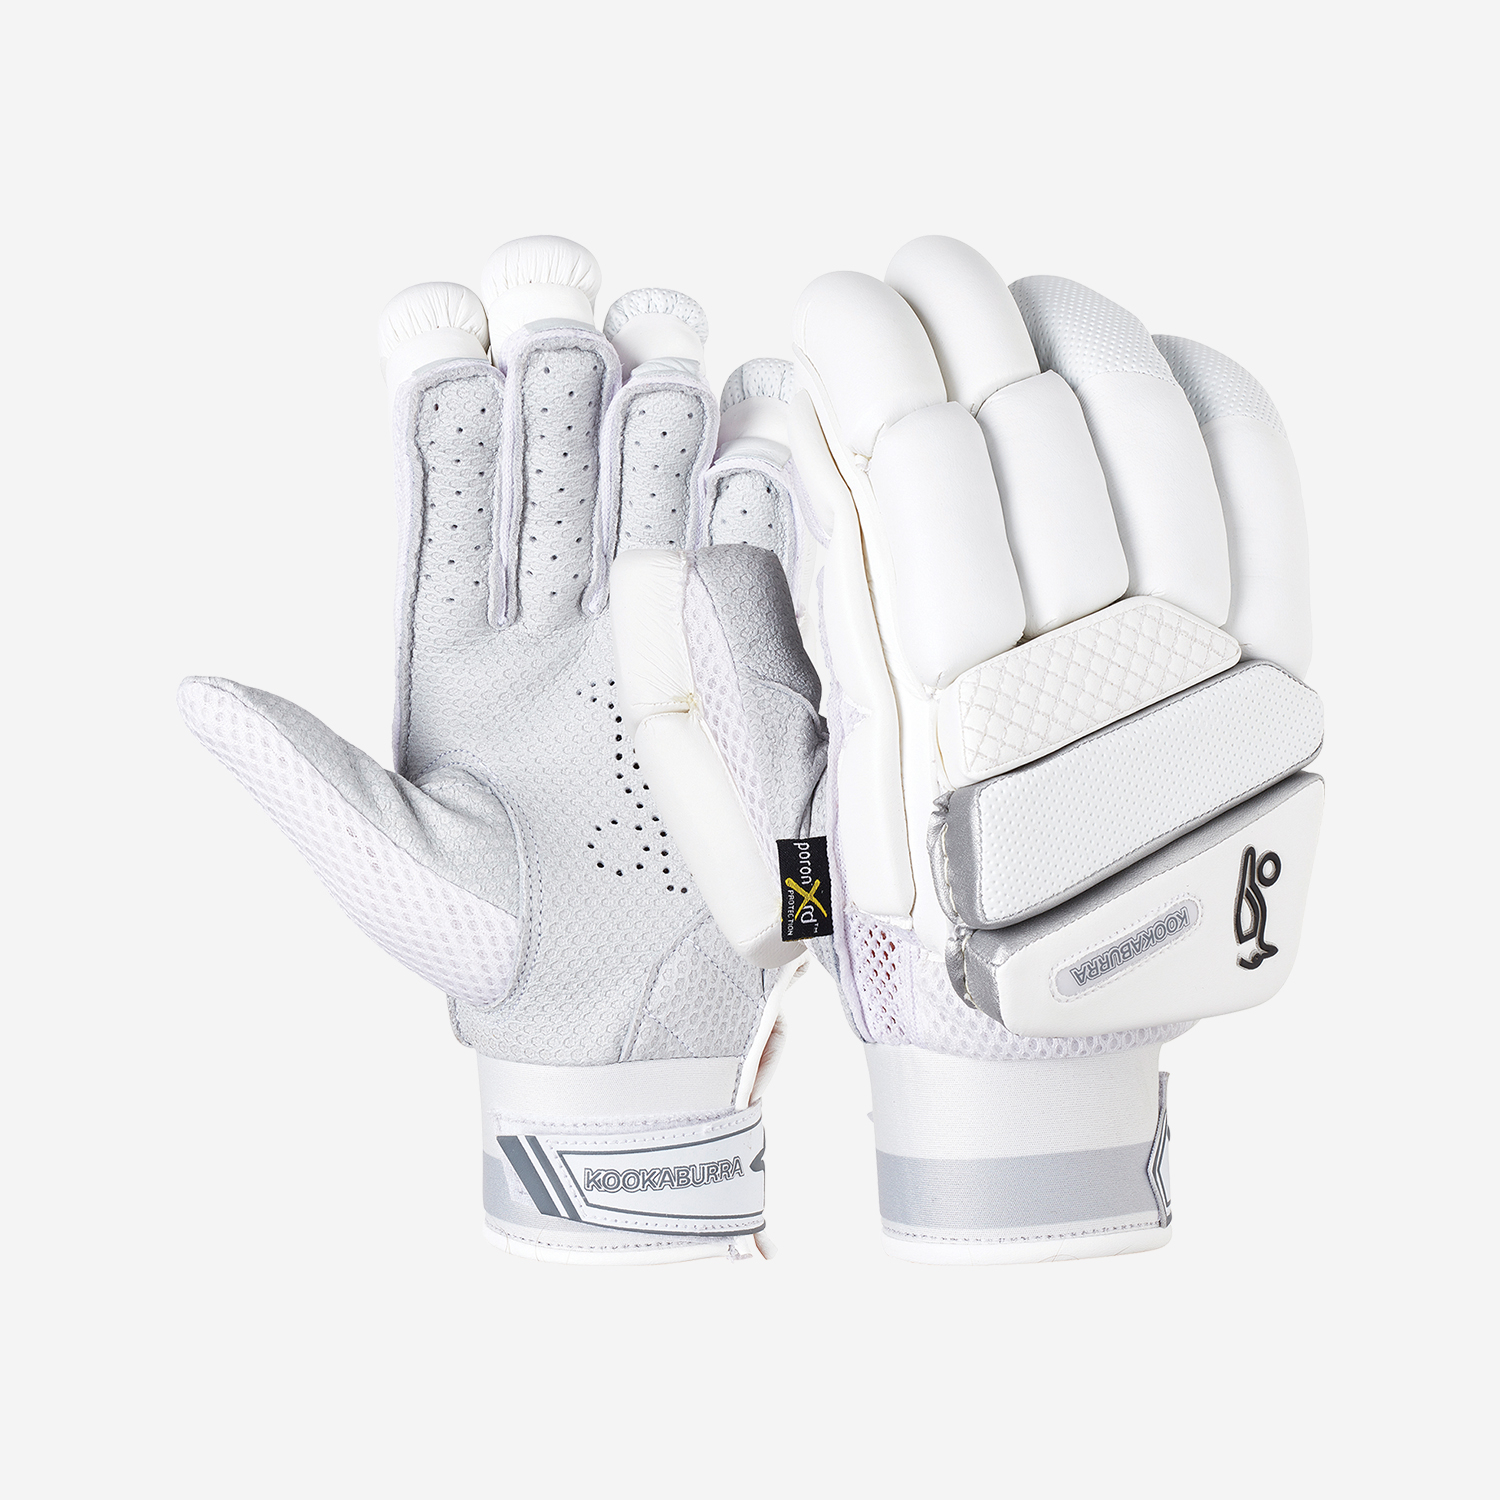 Ghost Pro Players Batting Gloves